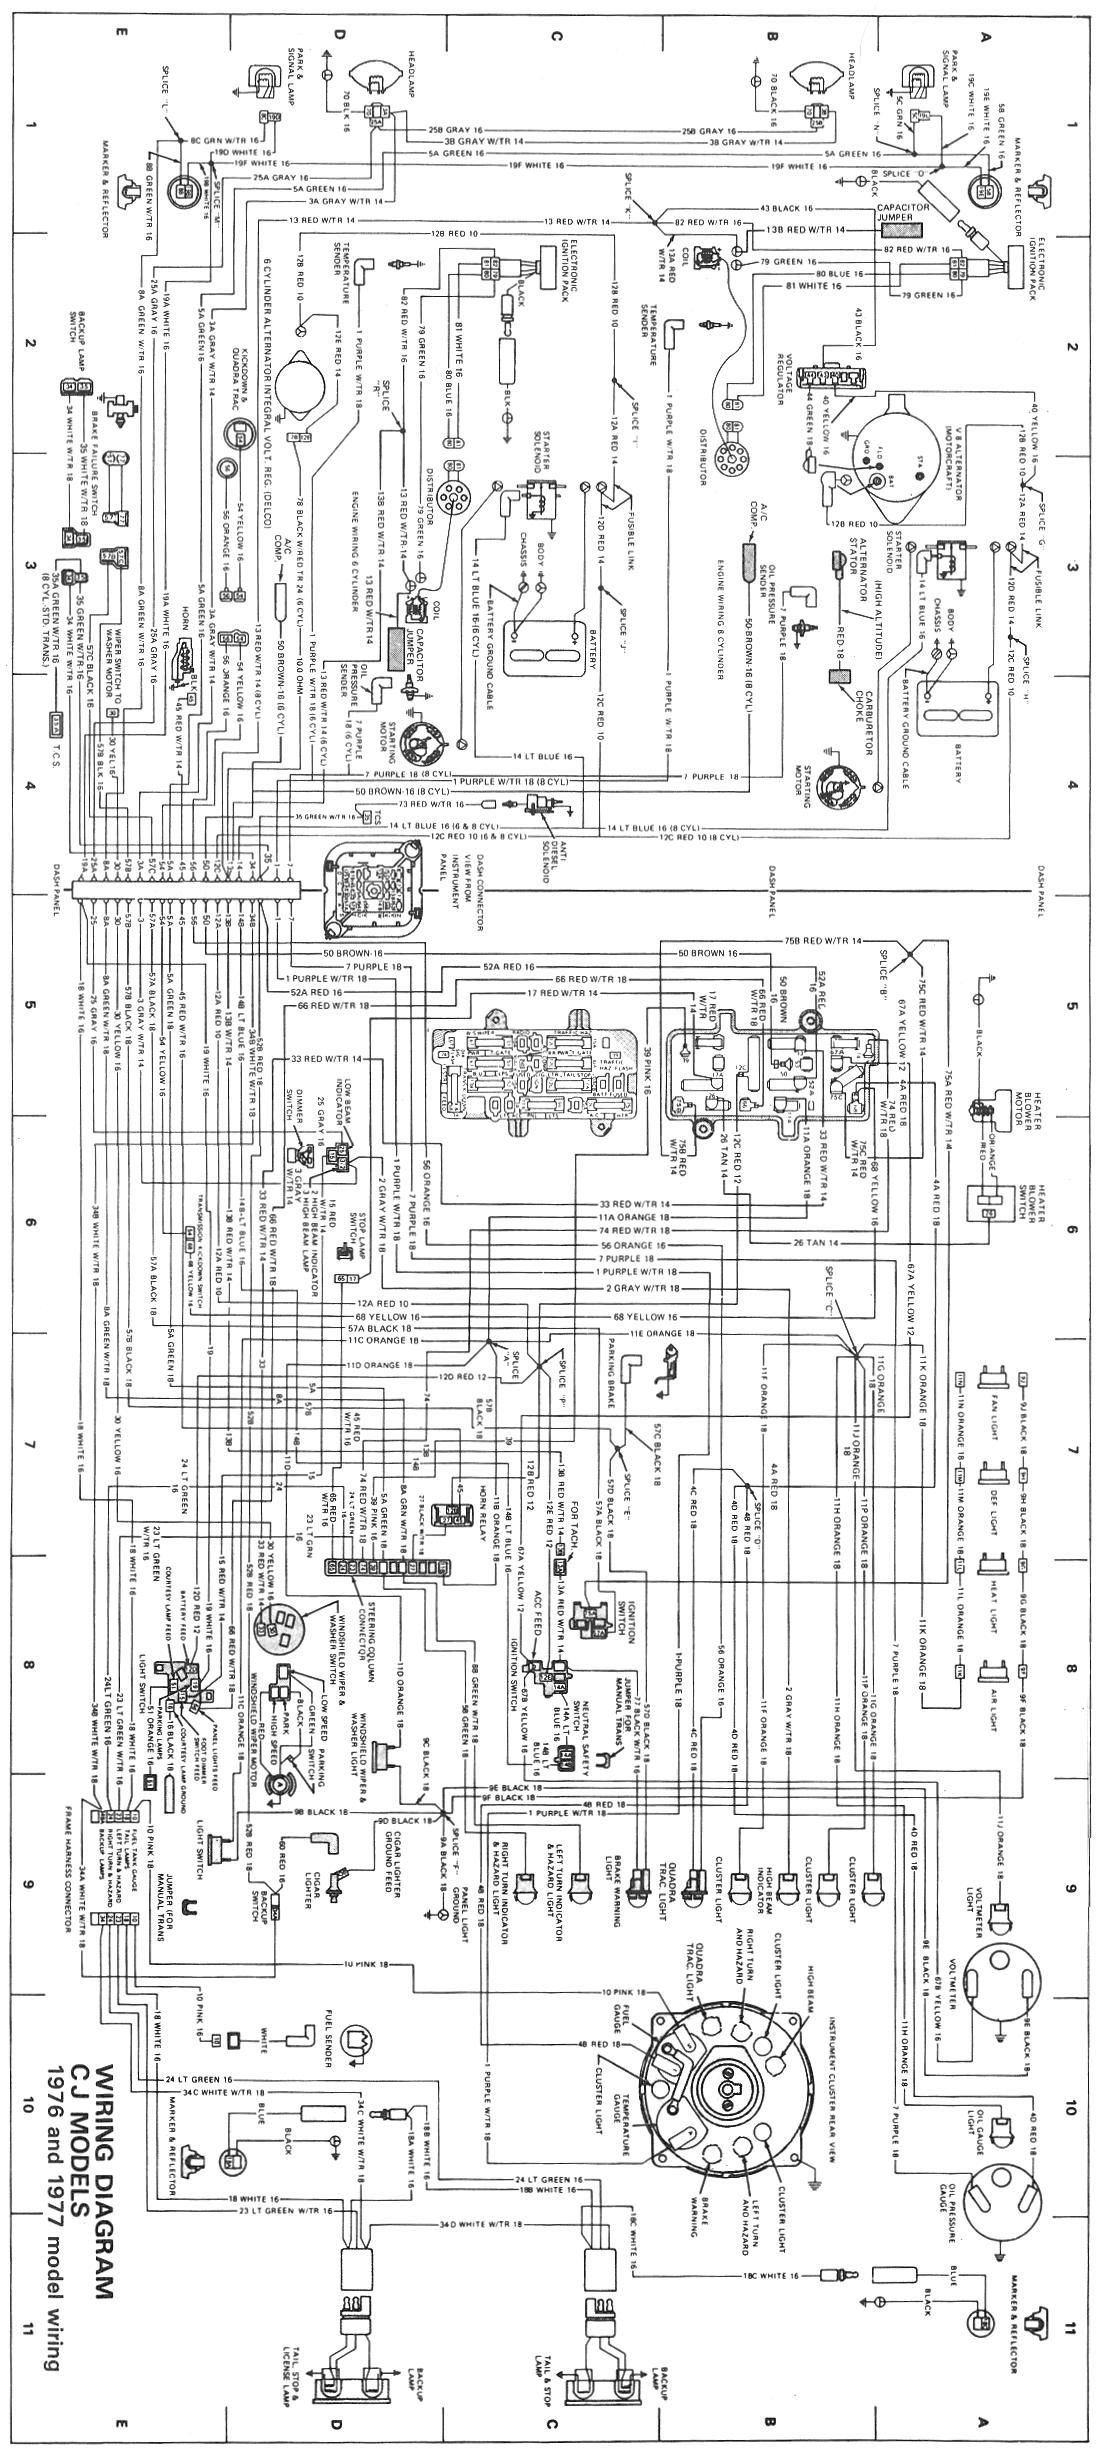 8d25ded6e3673519e155875e09844e5e cj wiring diagram 1976 1977 jpg 1,100�2,459 pixels 1976 jeep cj5 cj7 wiring diagram at n-0.co